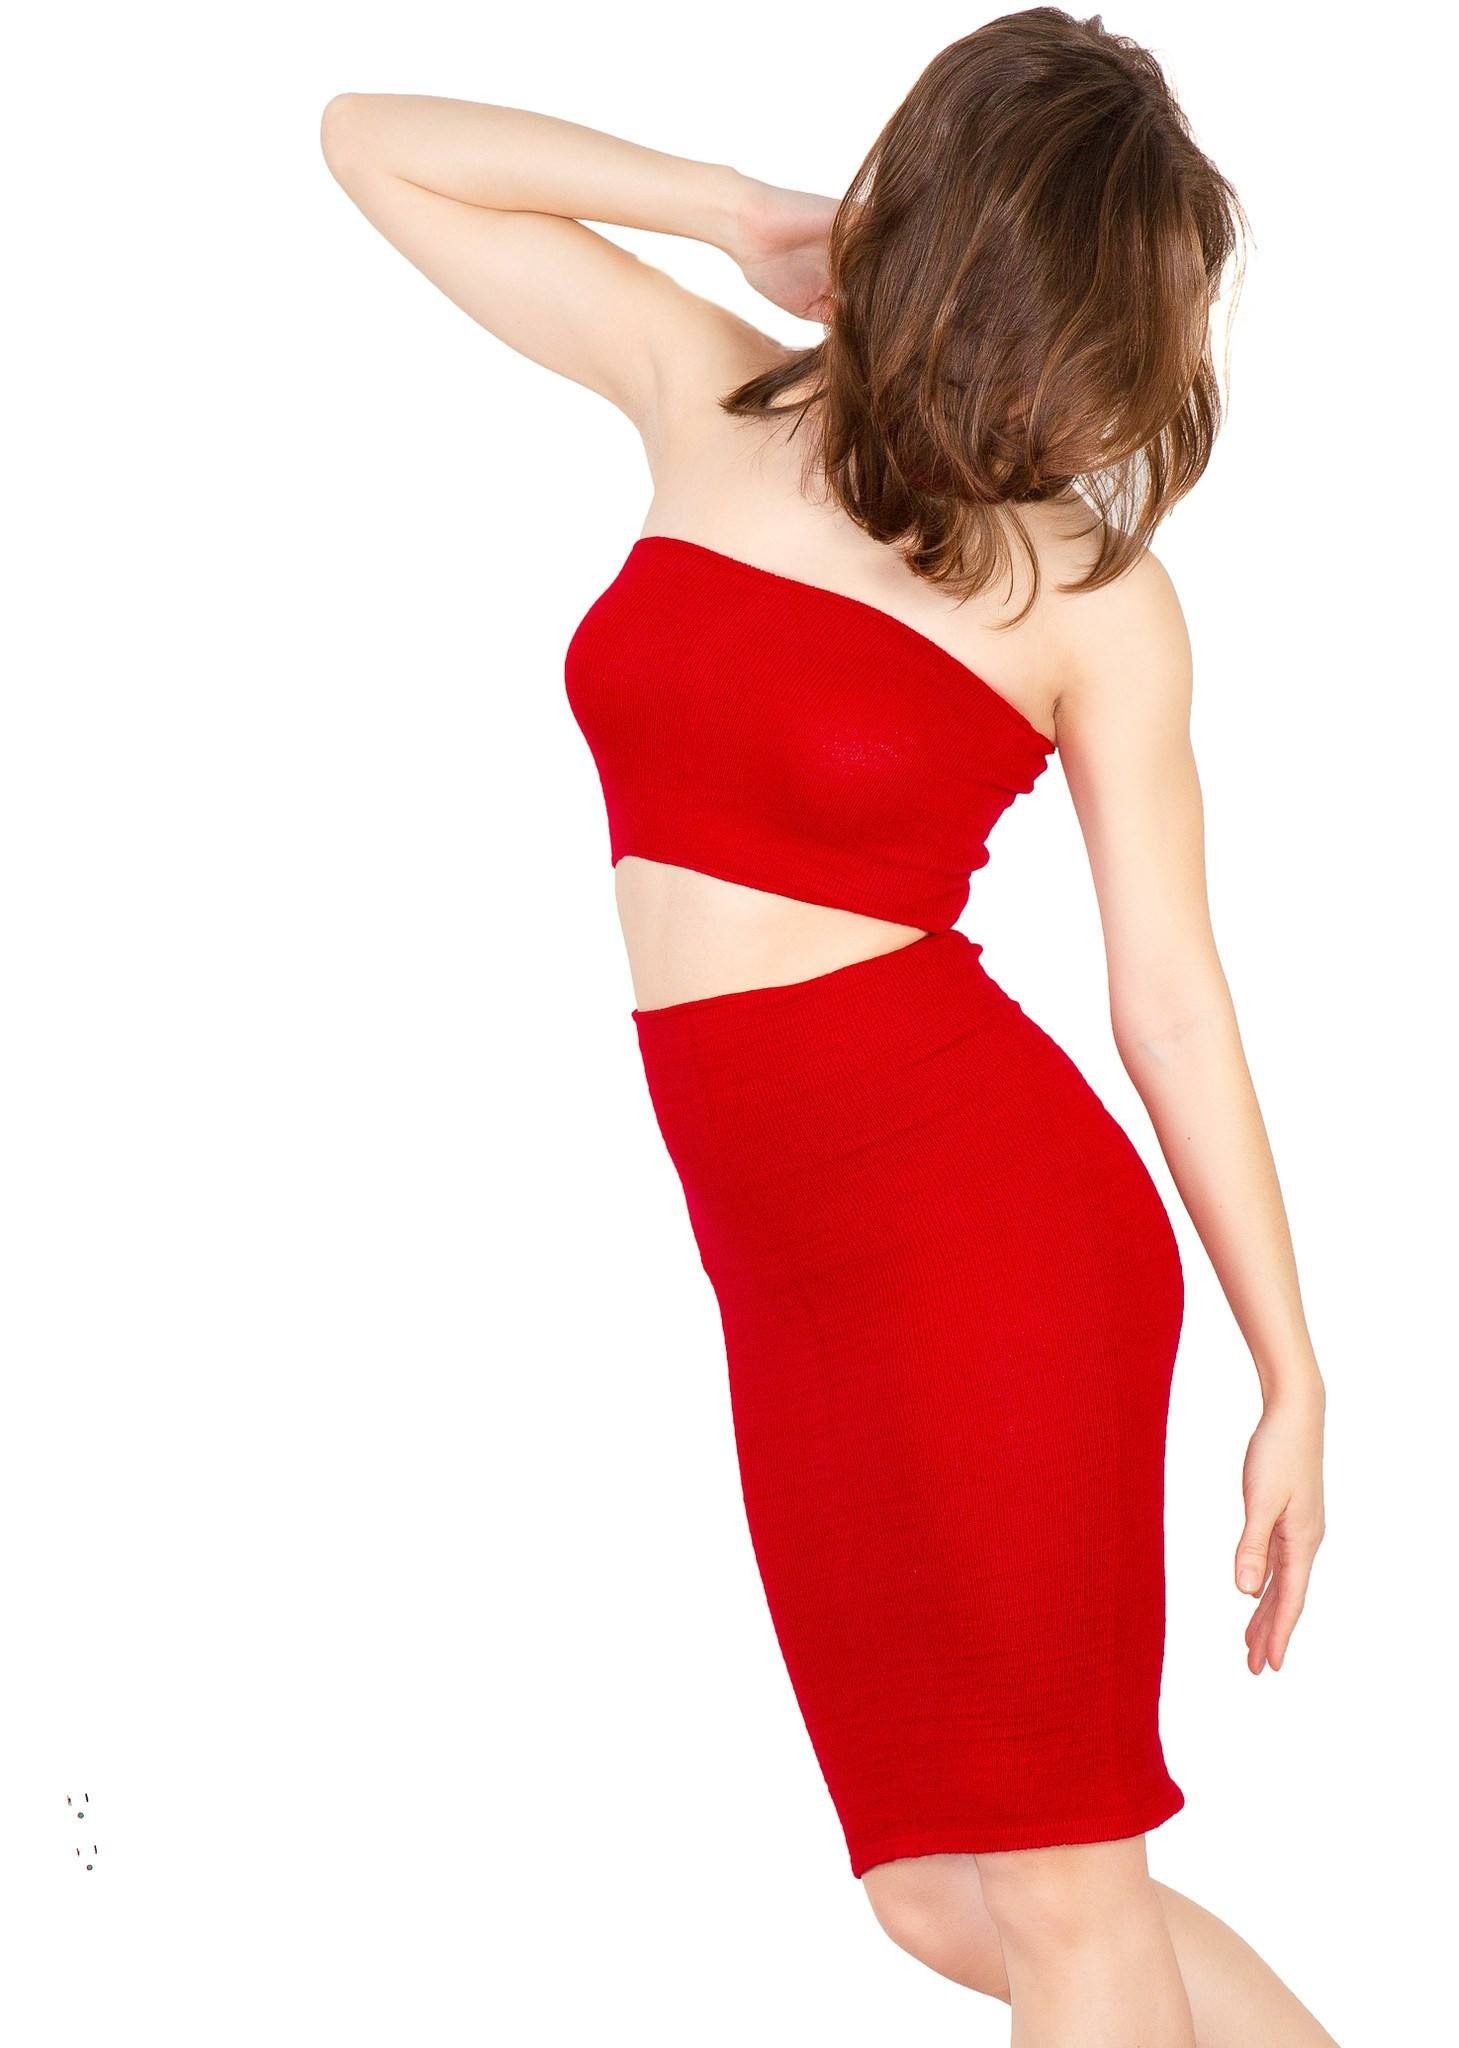 Tube Sweater Dress & Tube Top @KDdanceNewYork #MadeInUSA - 6